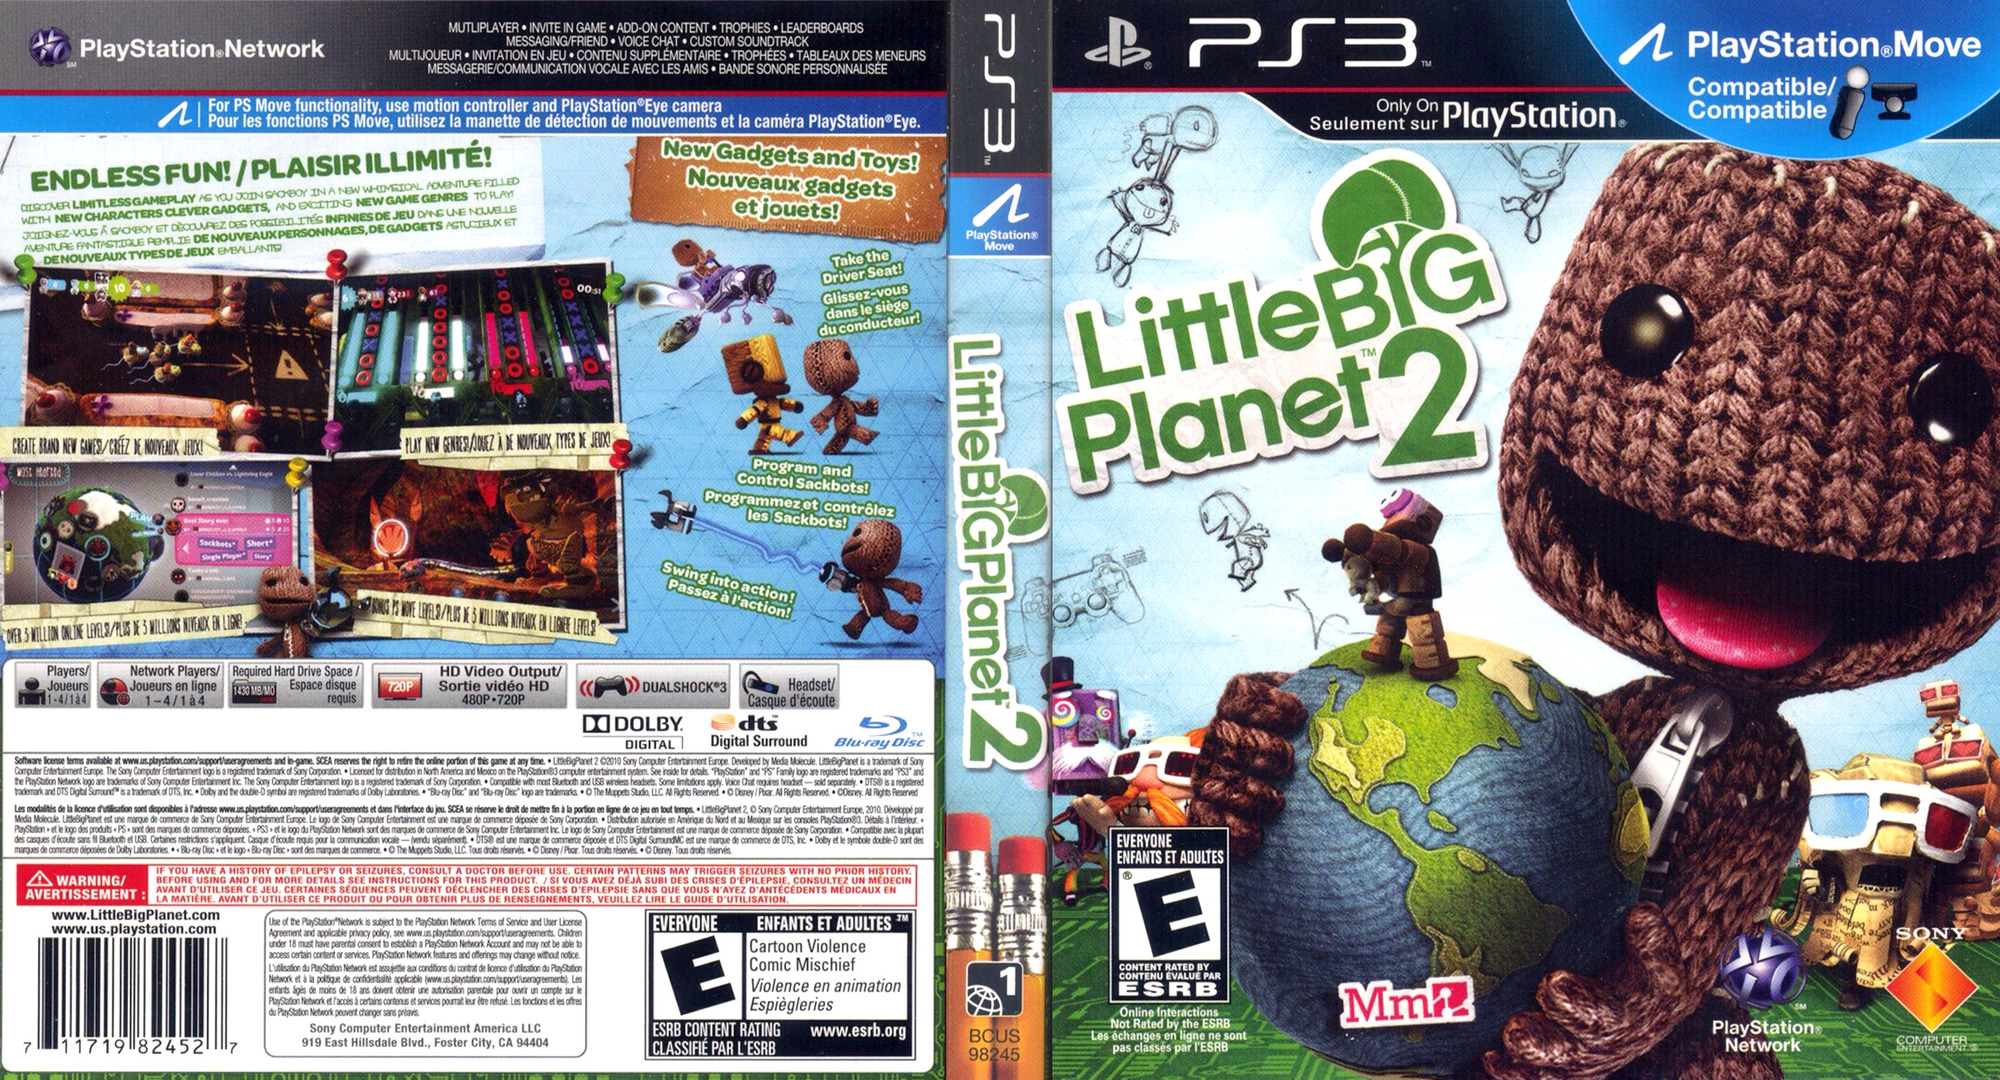 LittleBigPlanet 2 PS3 coverfullHQ (BCUS98245)